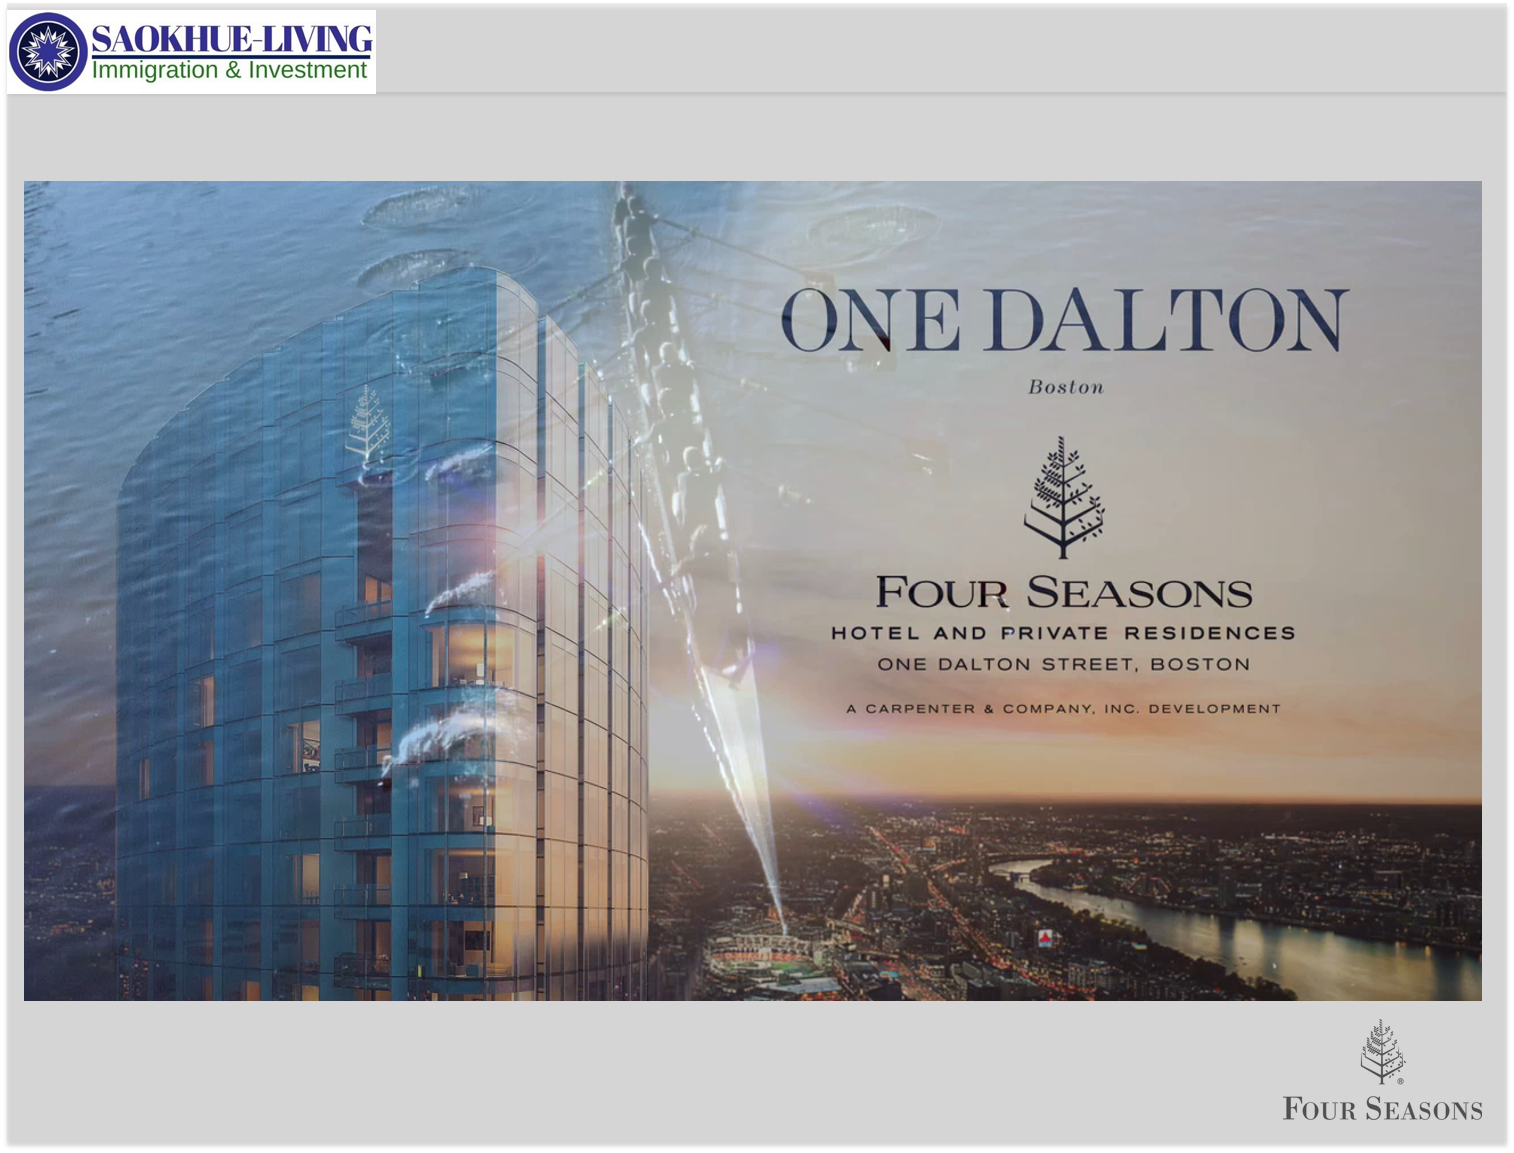 saokhue living_dinh cu my_four seasons_one dalton_9